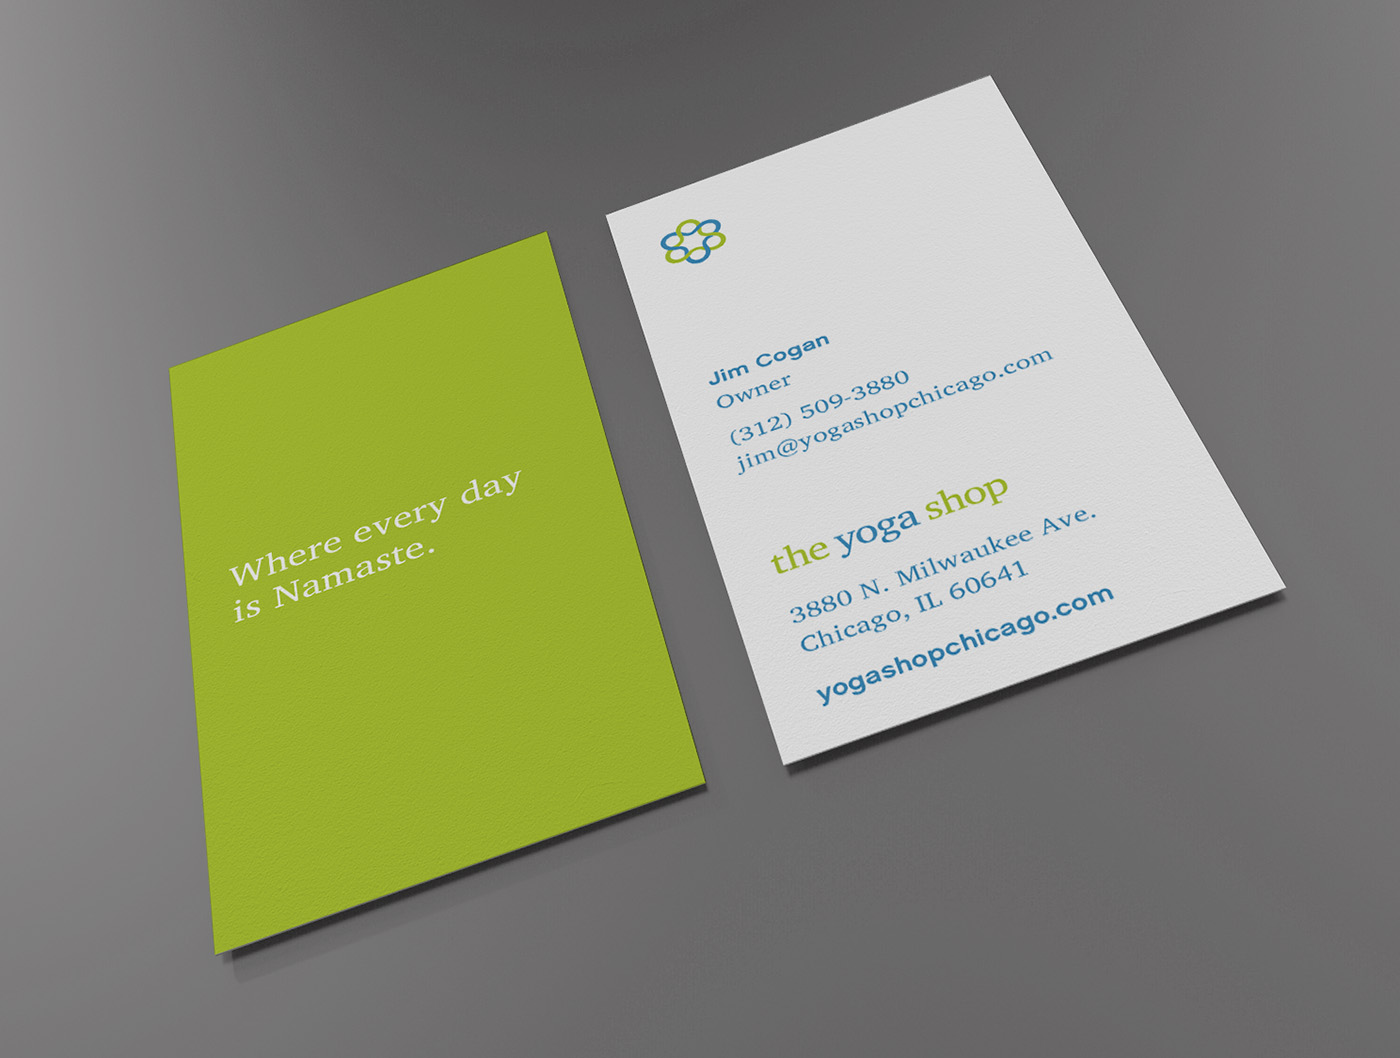 yoga-shop-cards